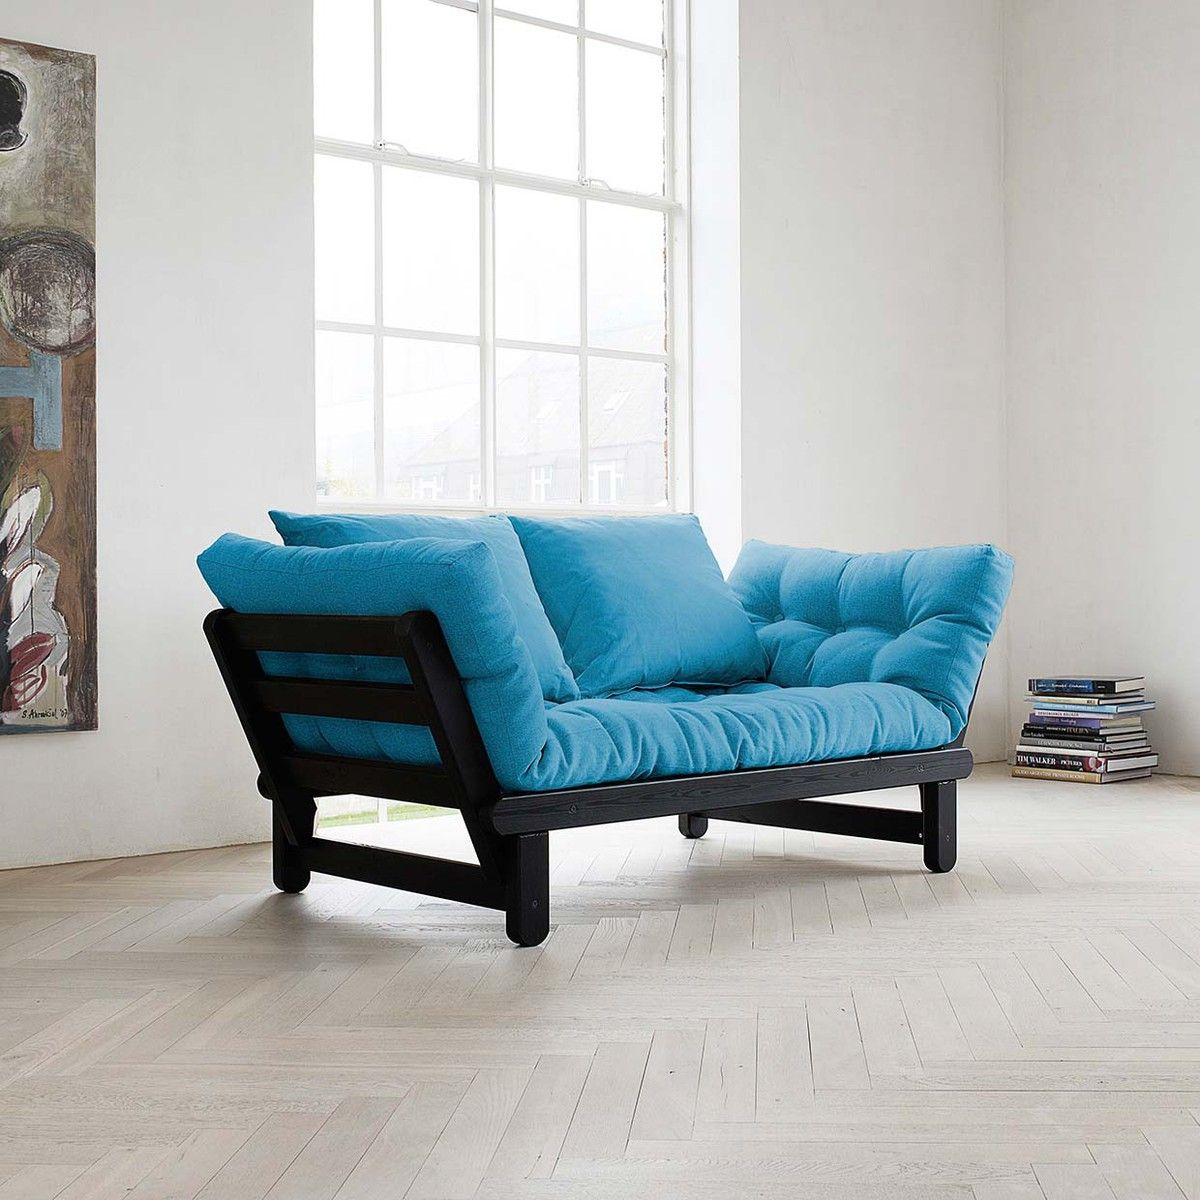 (15) Beat Horizon Blue Black Futon sofa, Futon